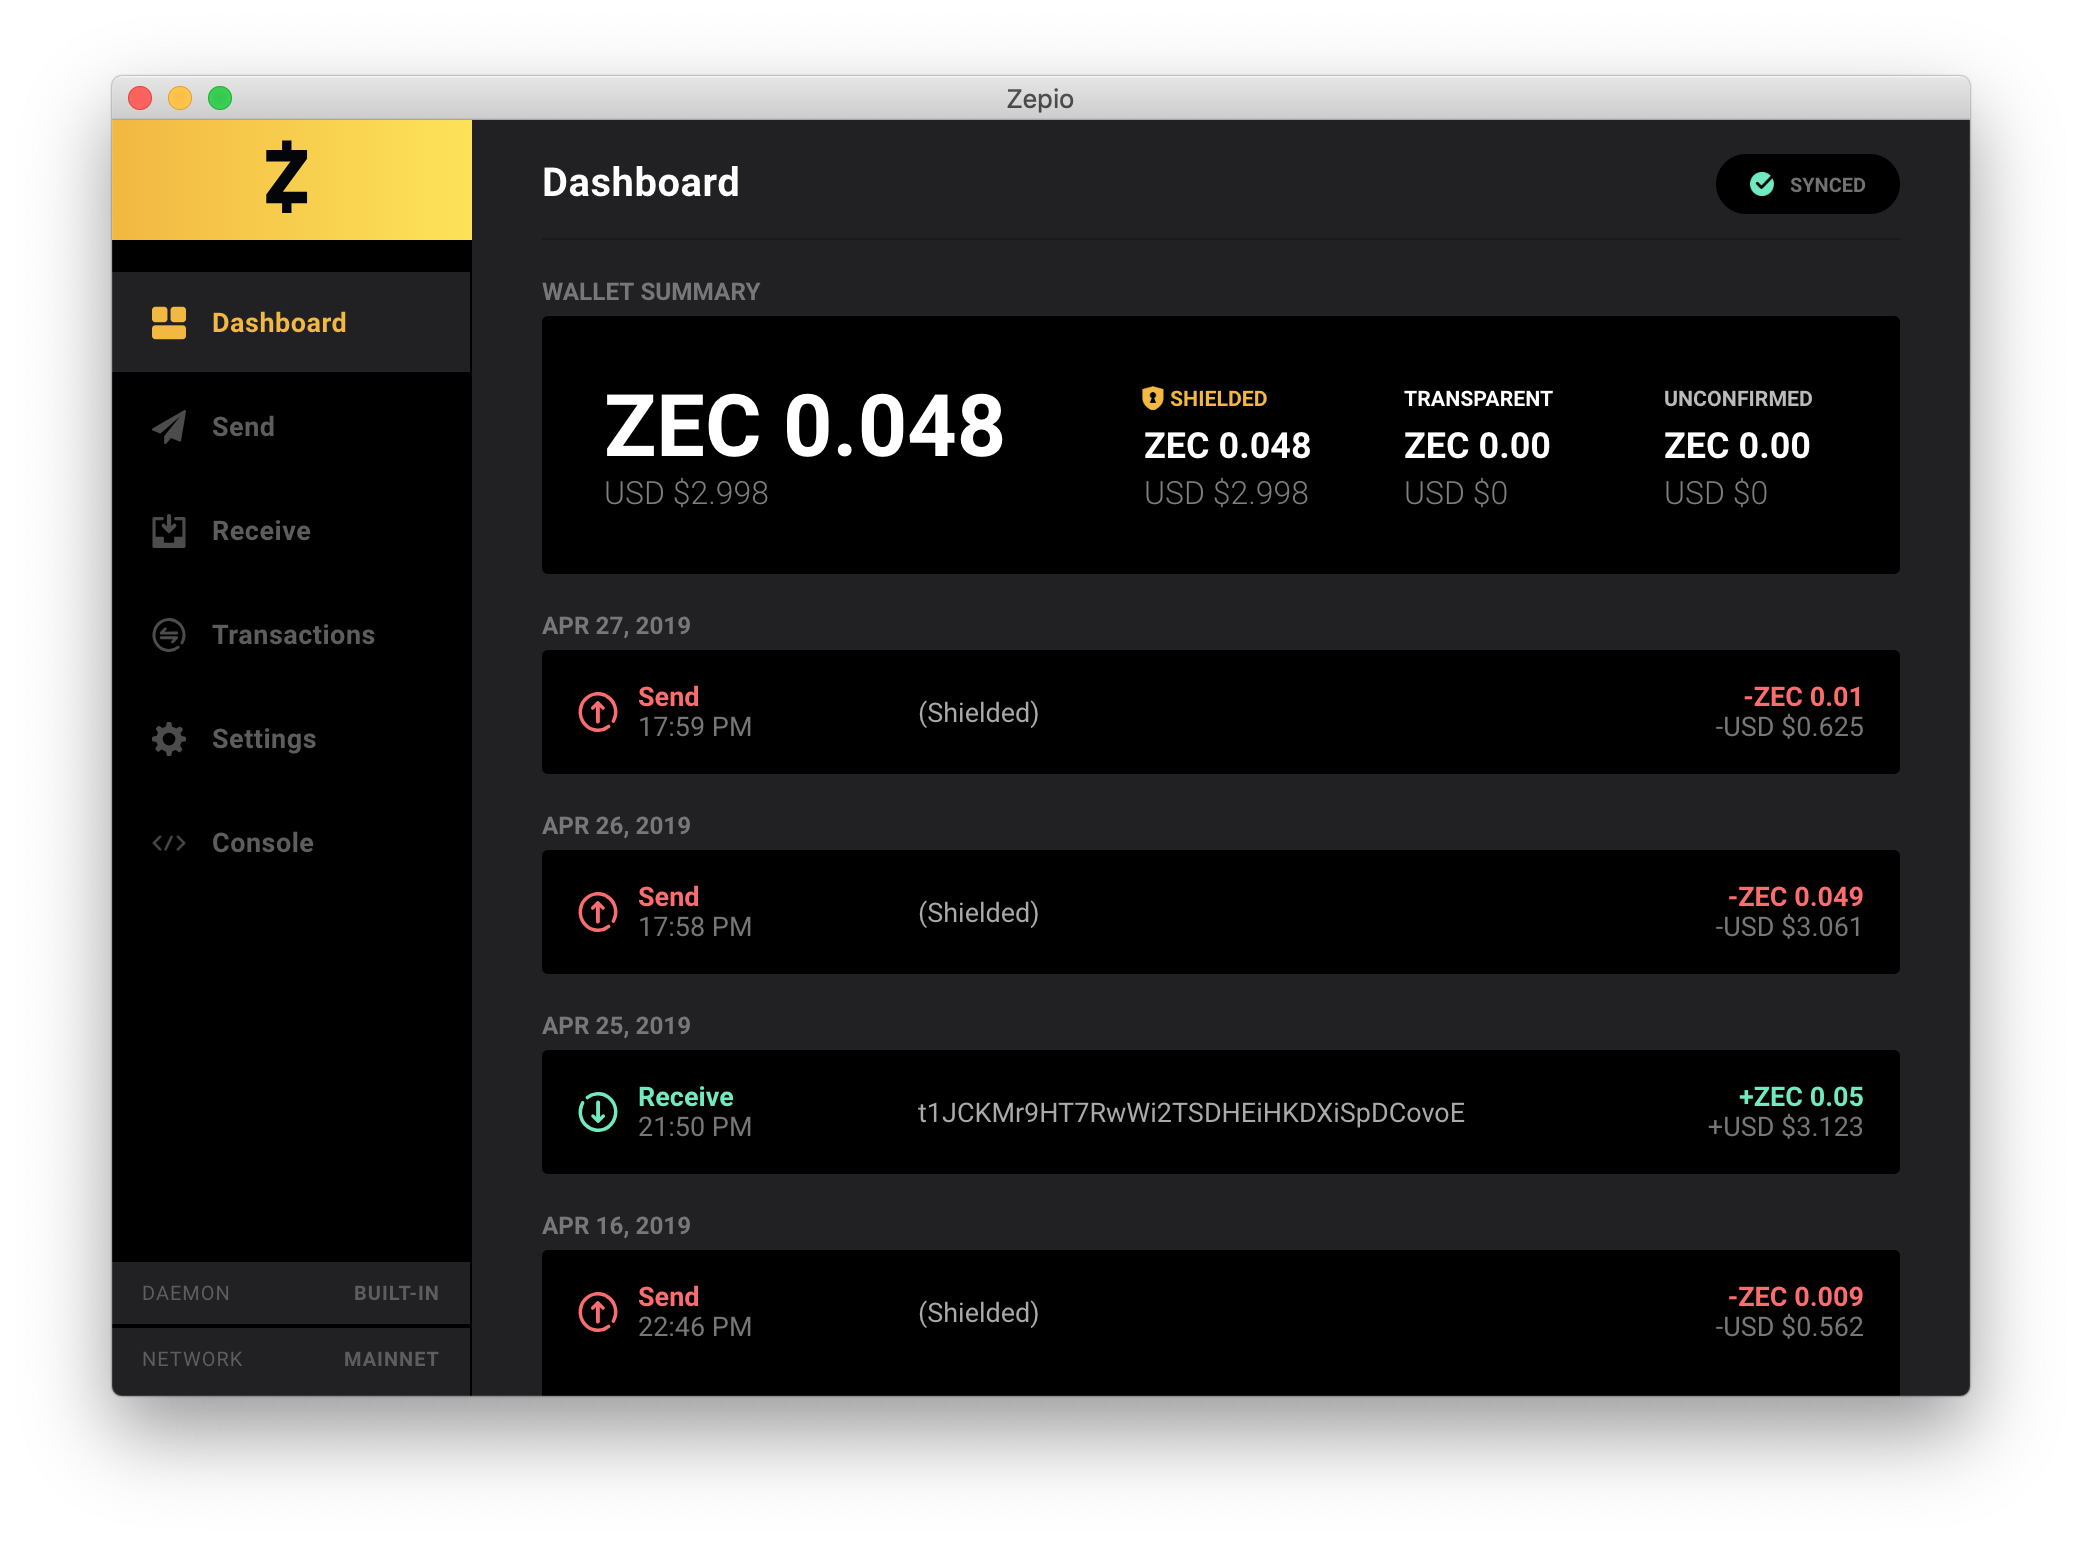 zepio-dashboard